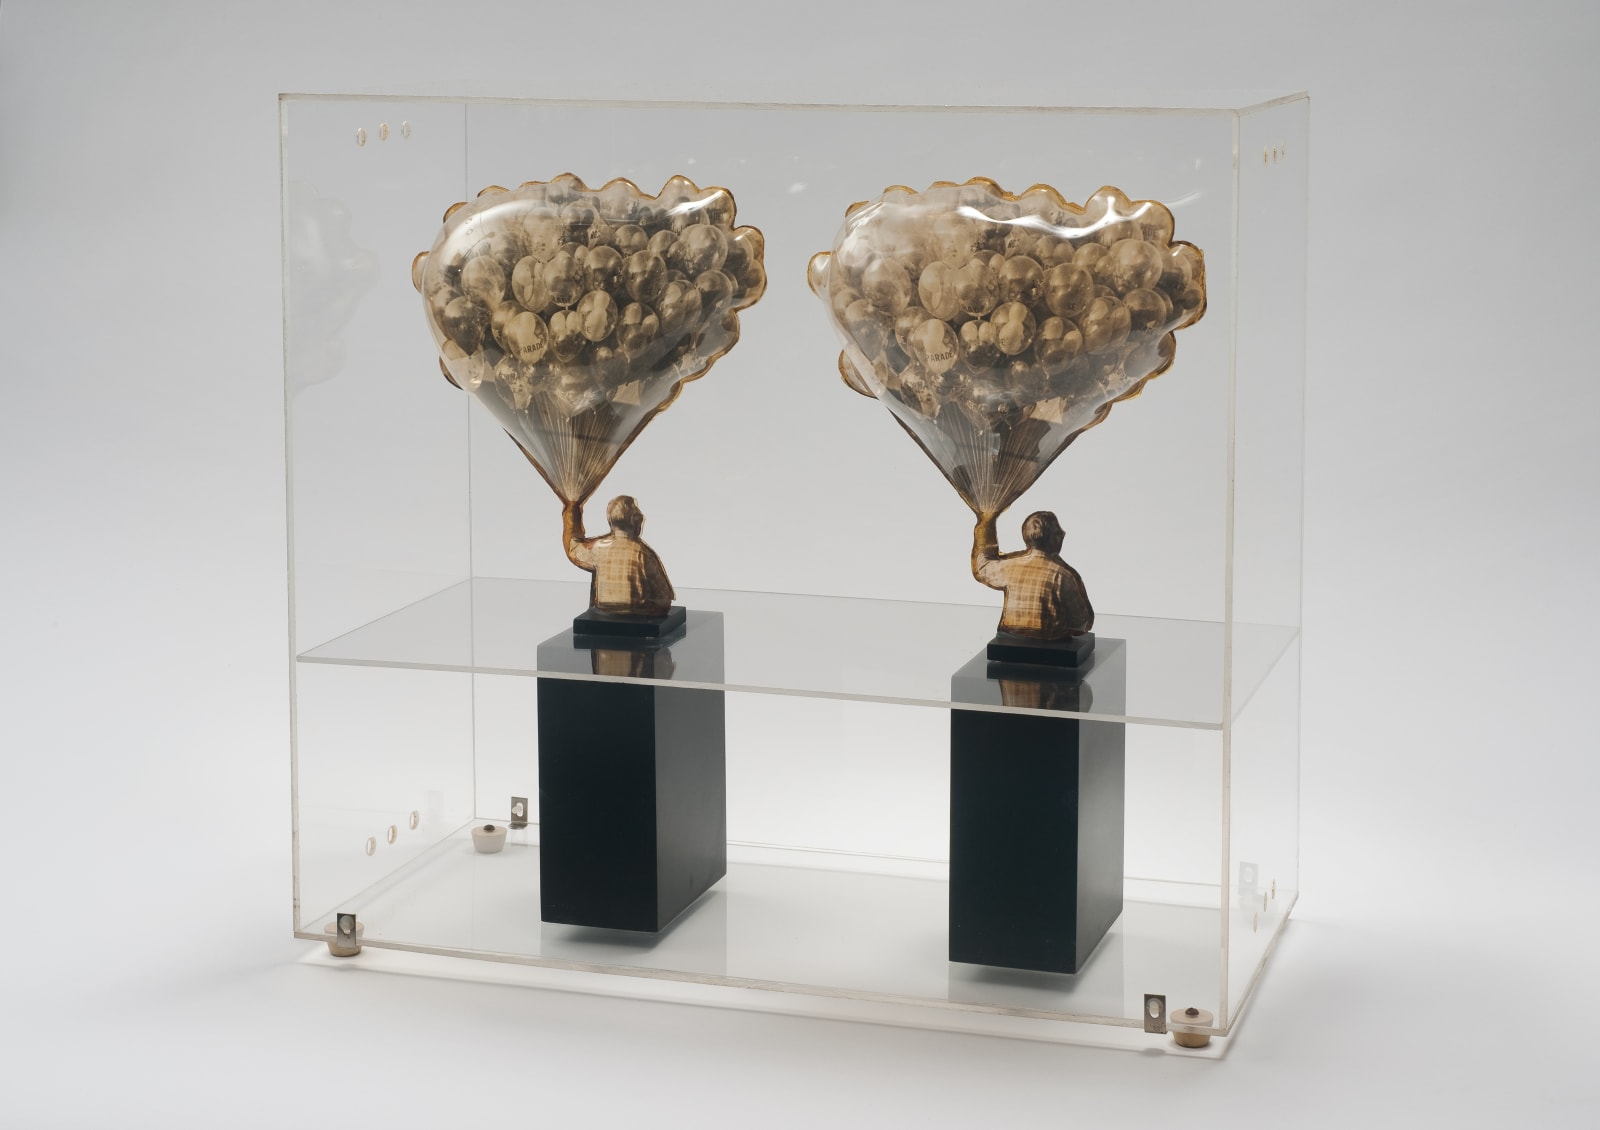 Carl Cheng, Sculpture for Stereo Viewers